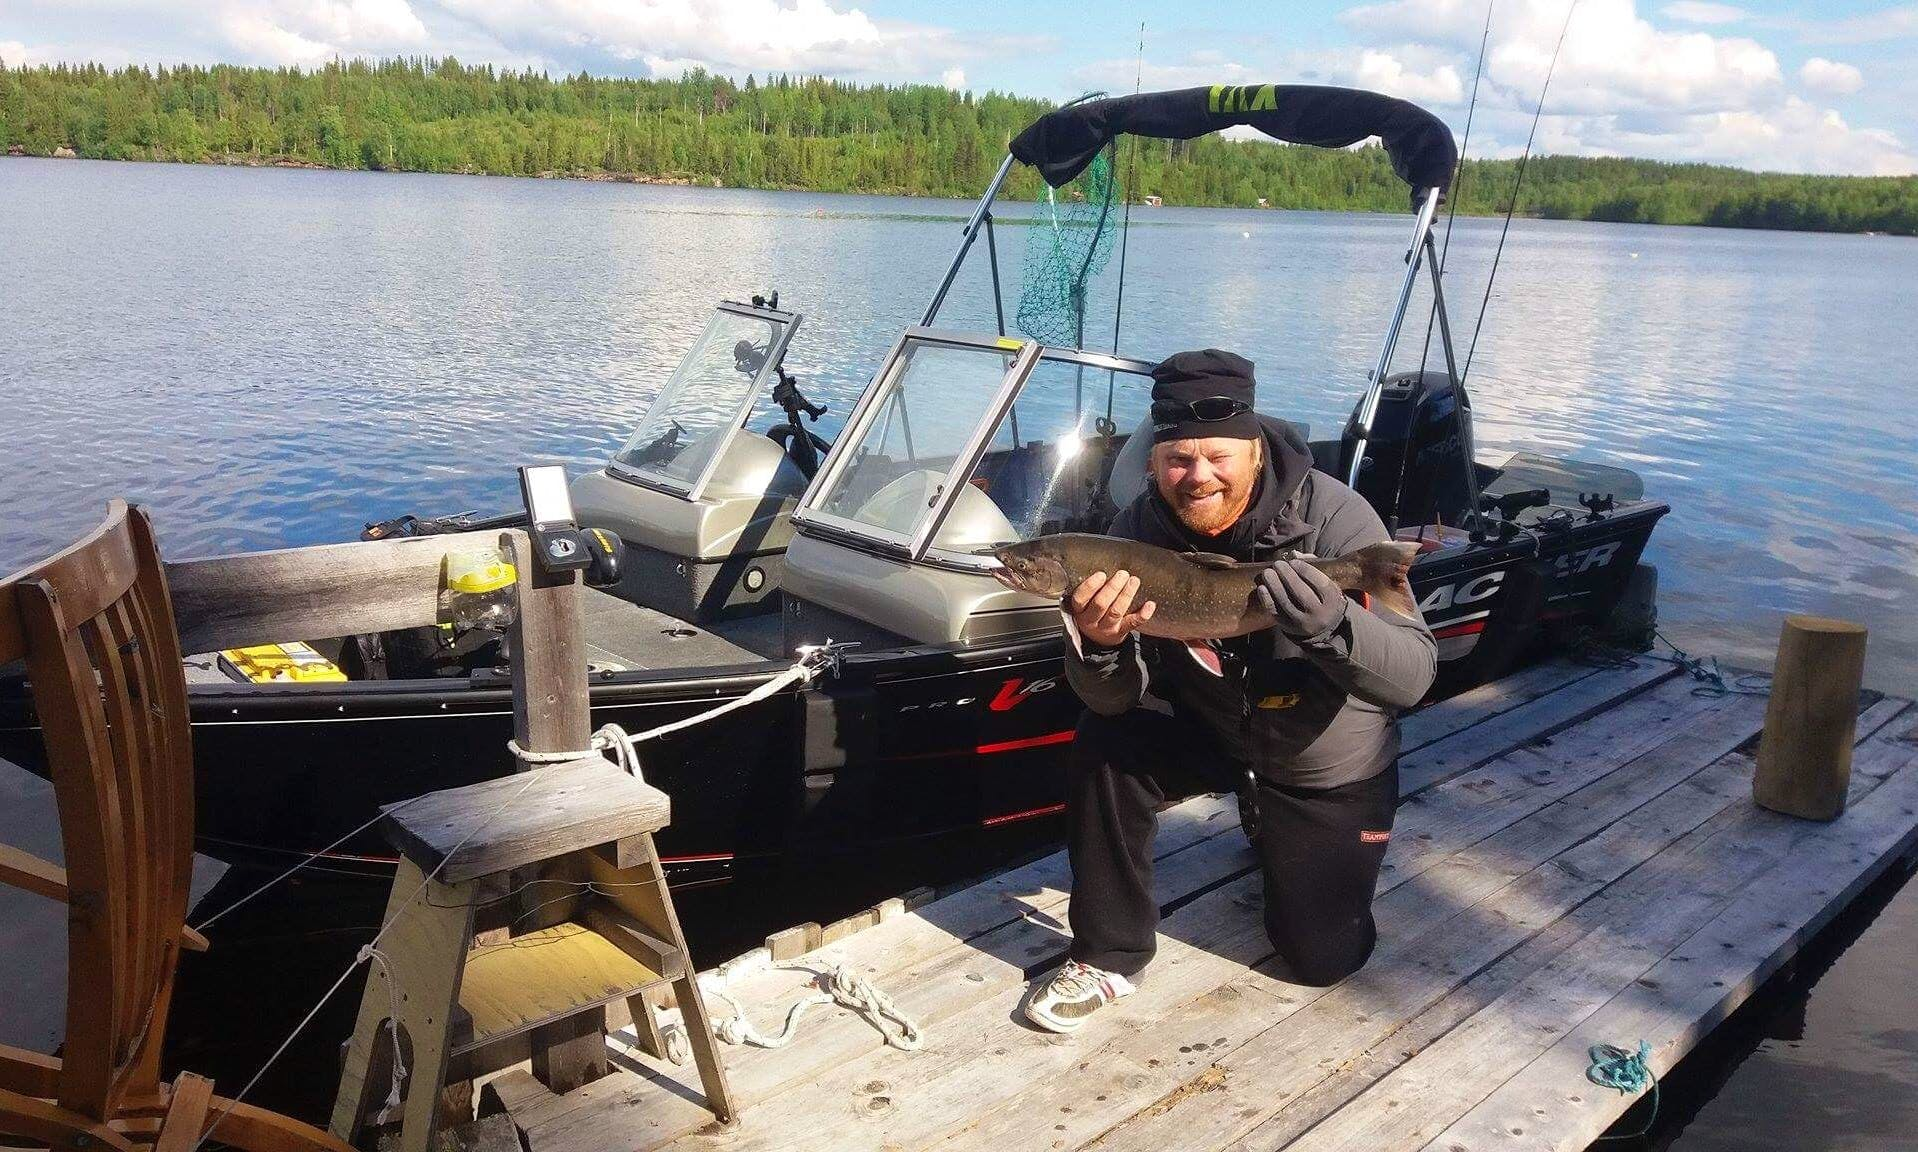 Fishing Boat Rental in Indalsälven and coastline in Sundsvall